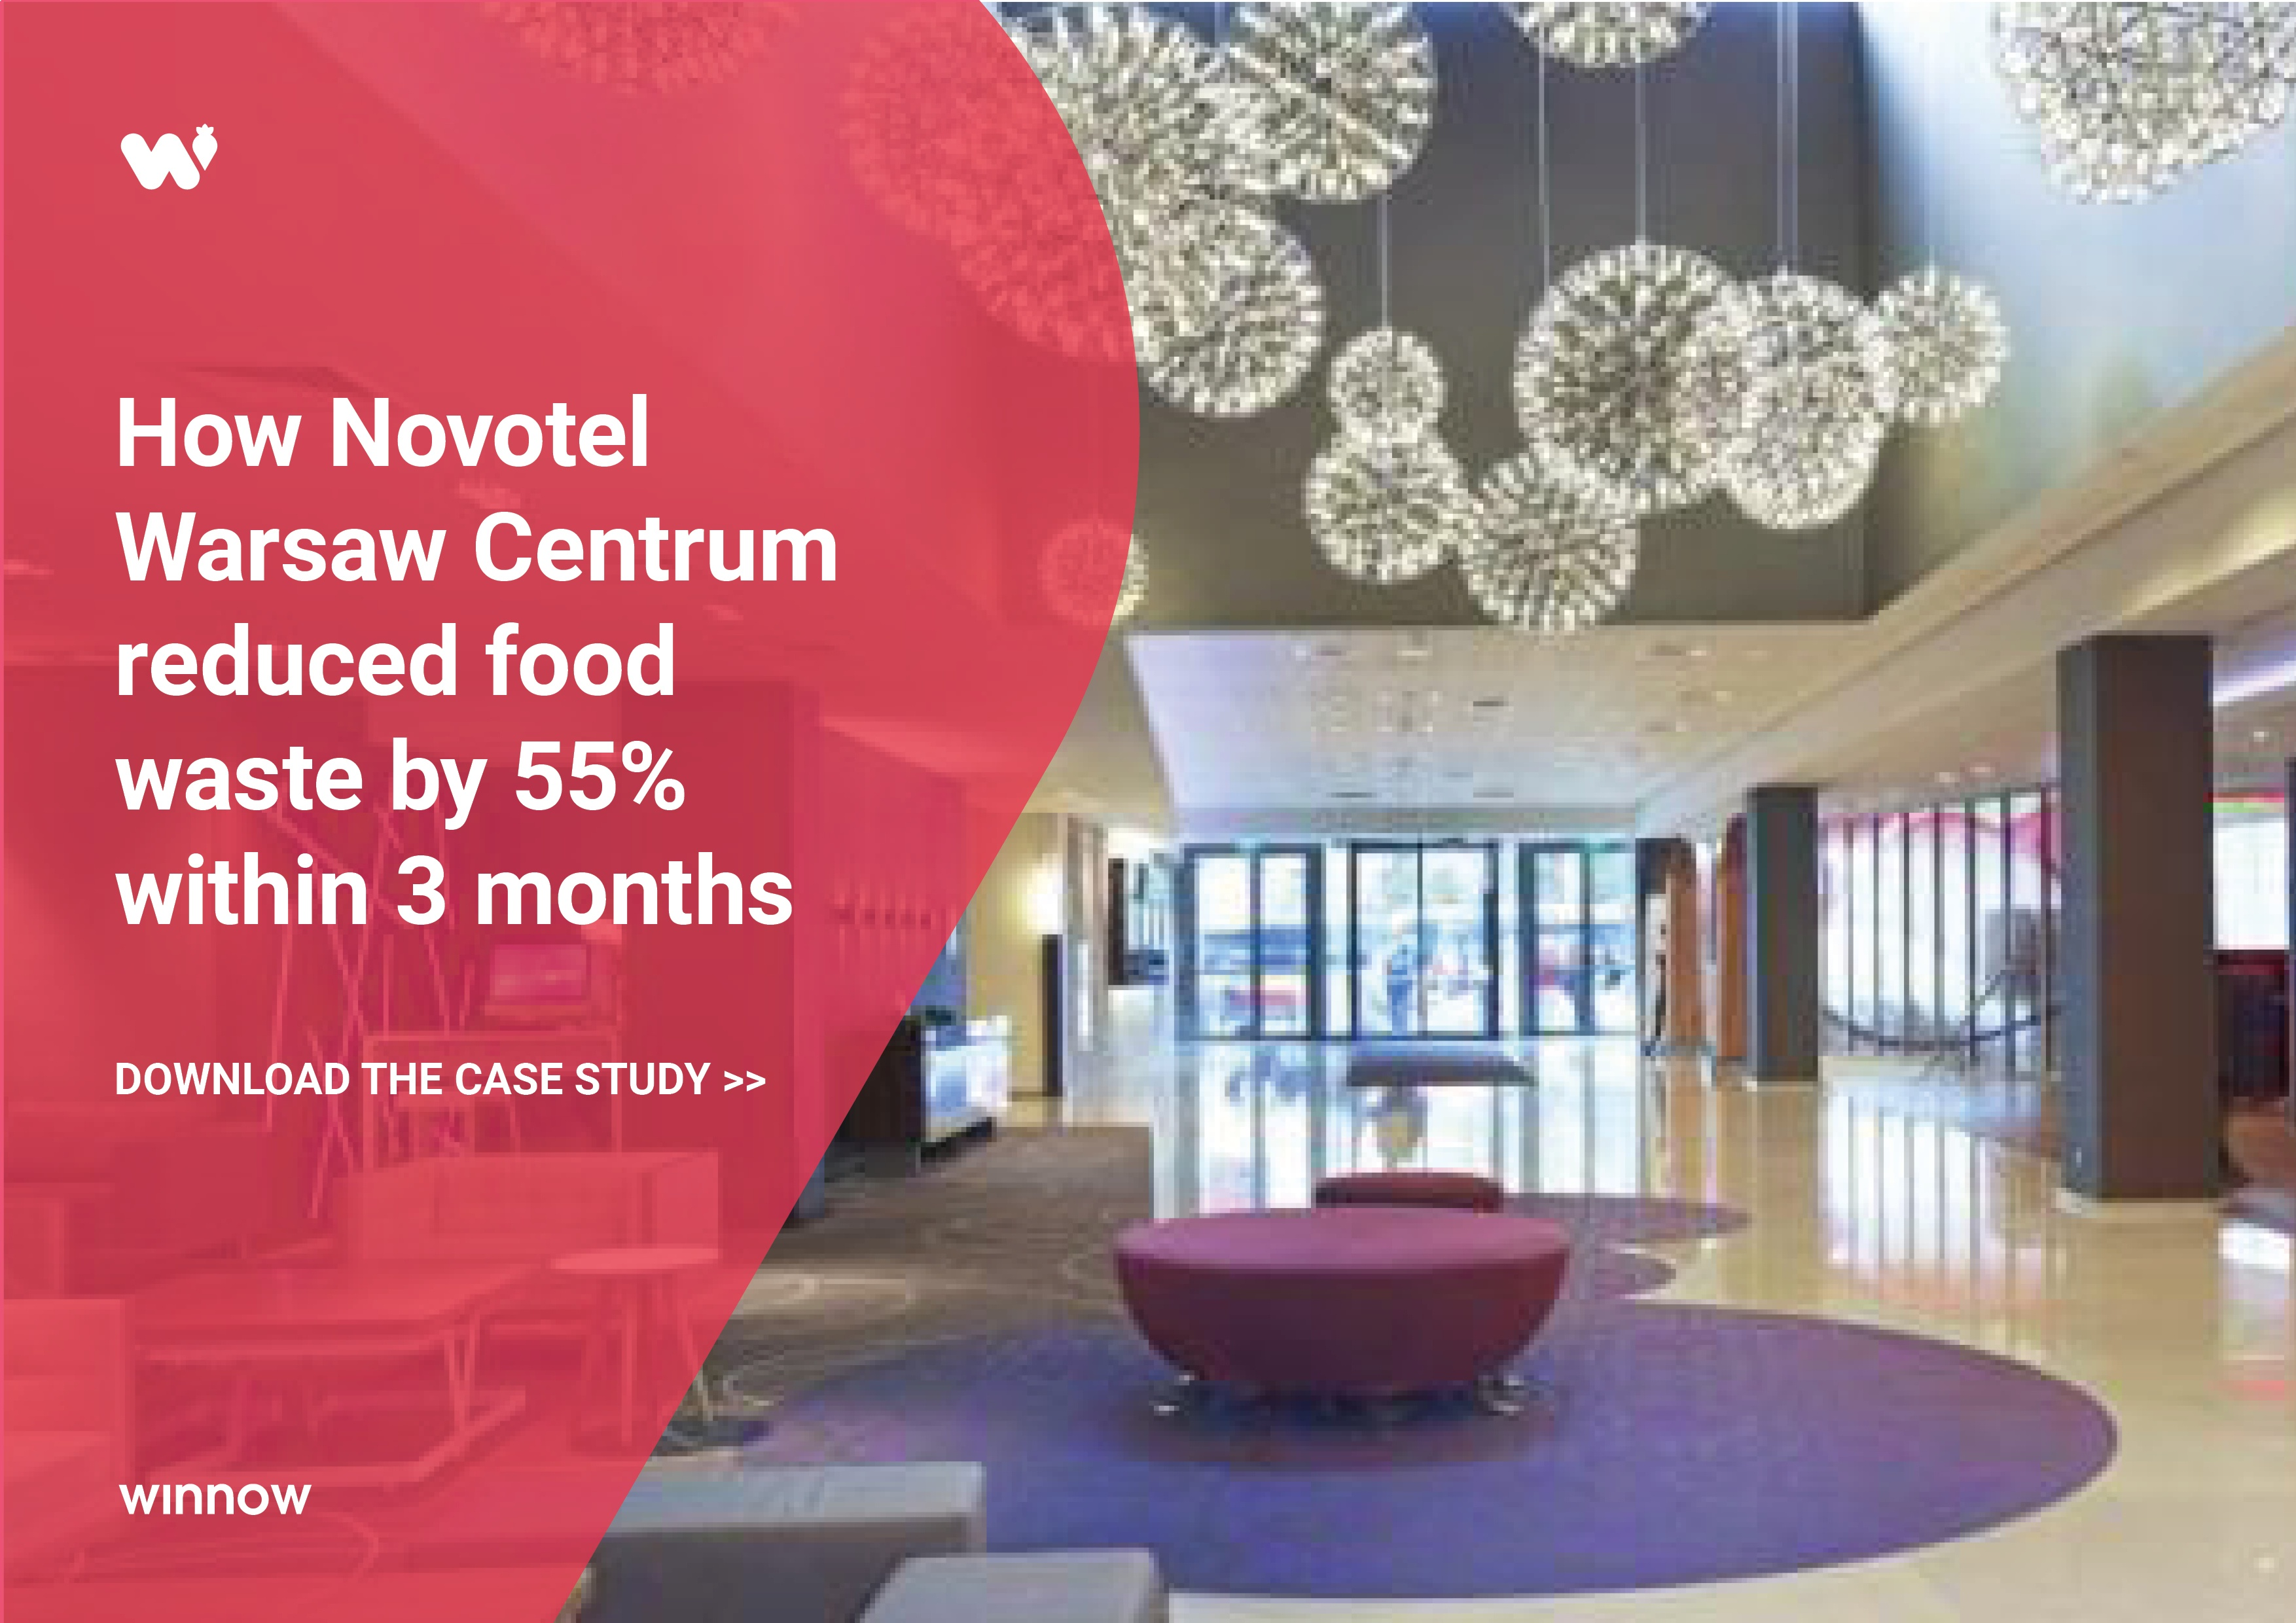 Novotel Warsaw Centrum reduced food waste by 55%